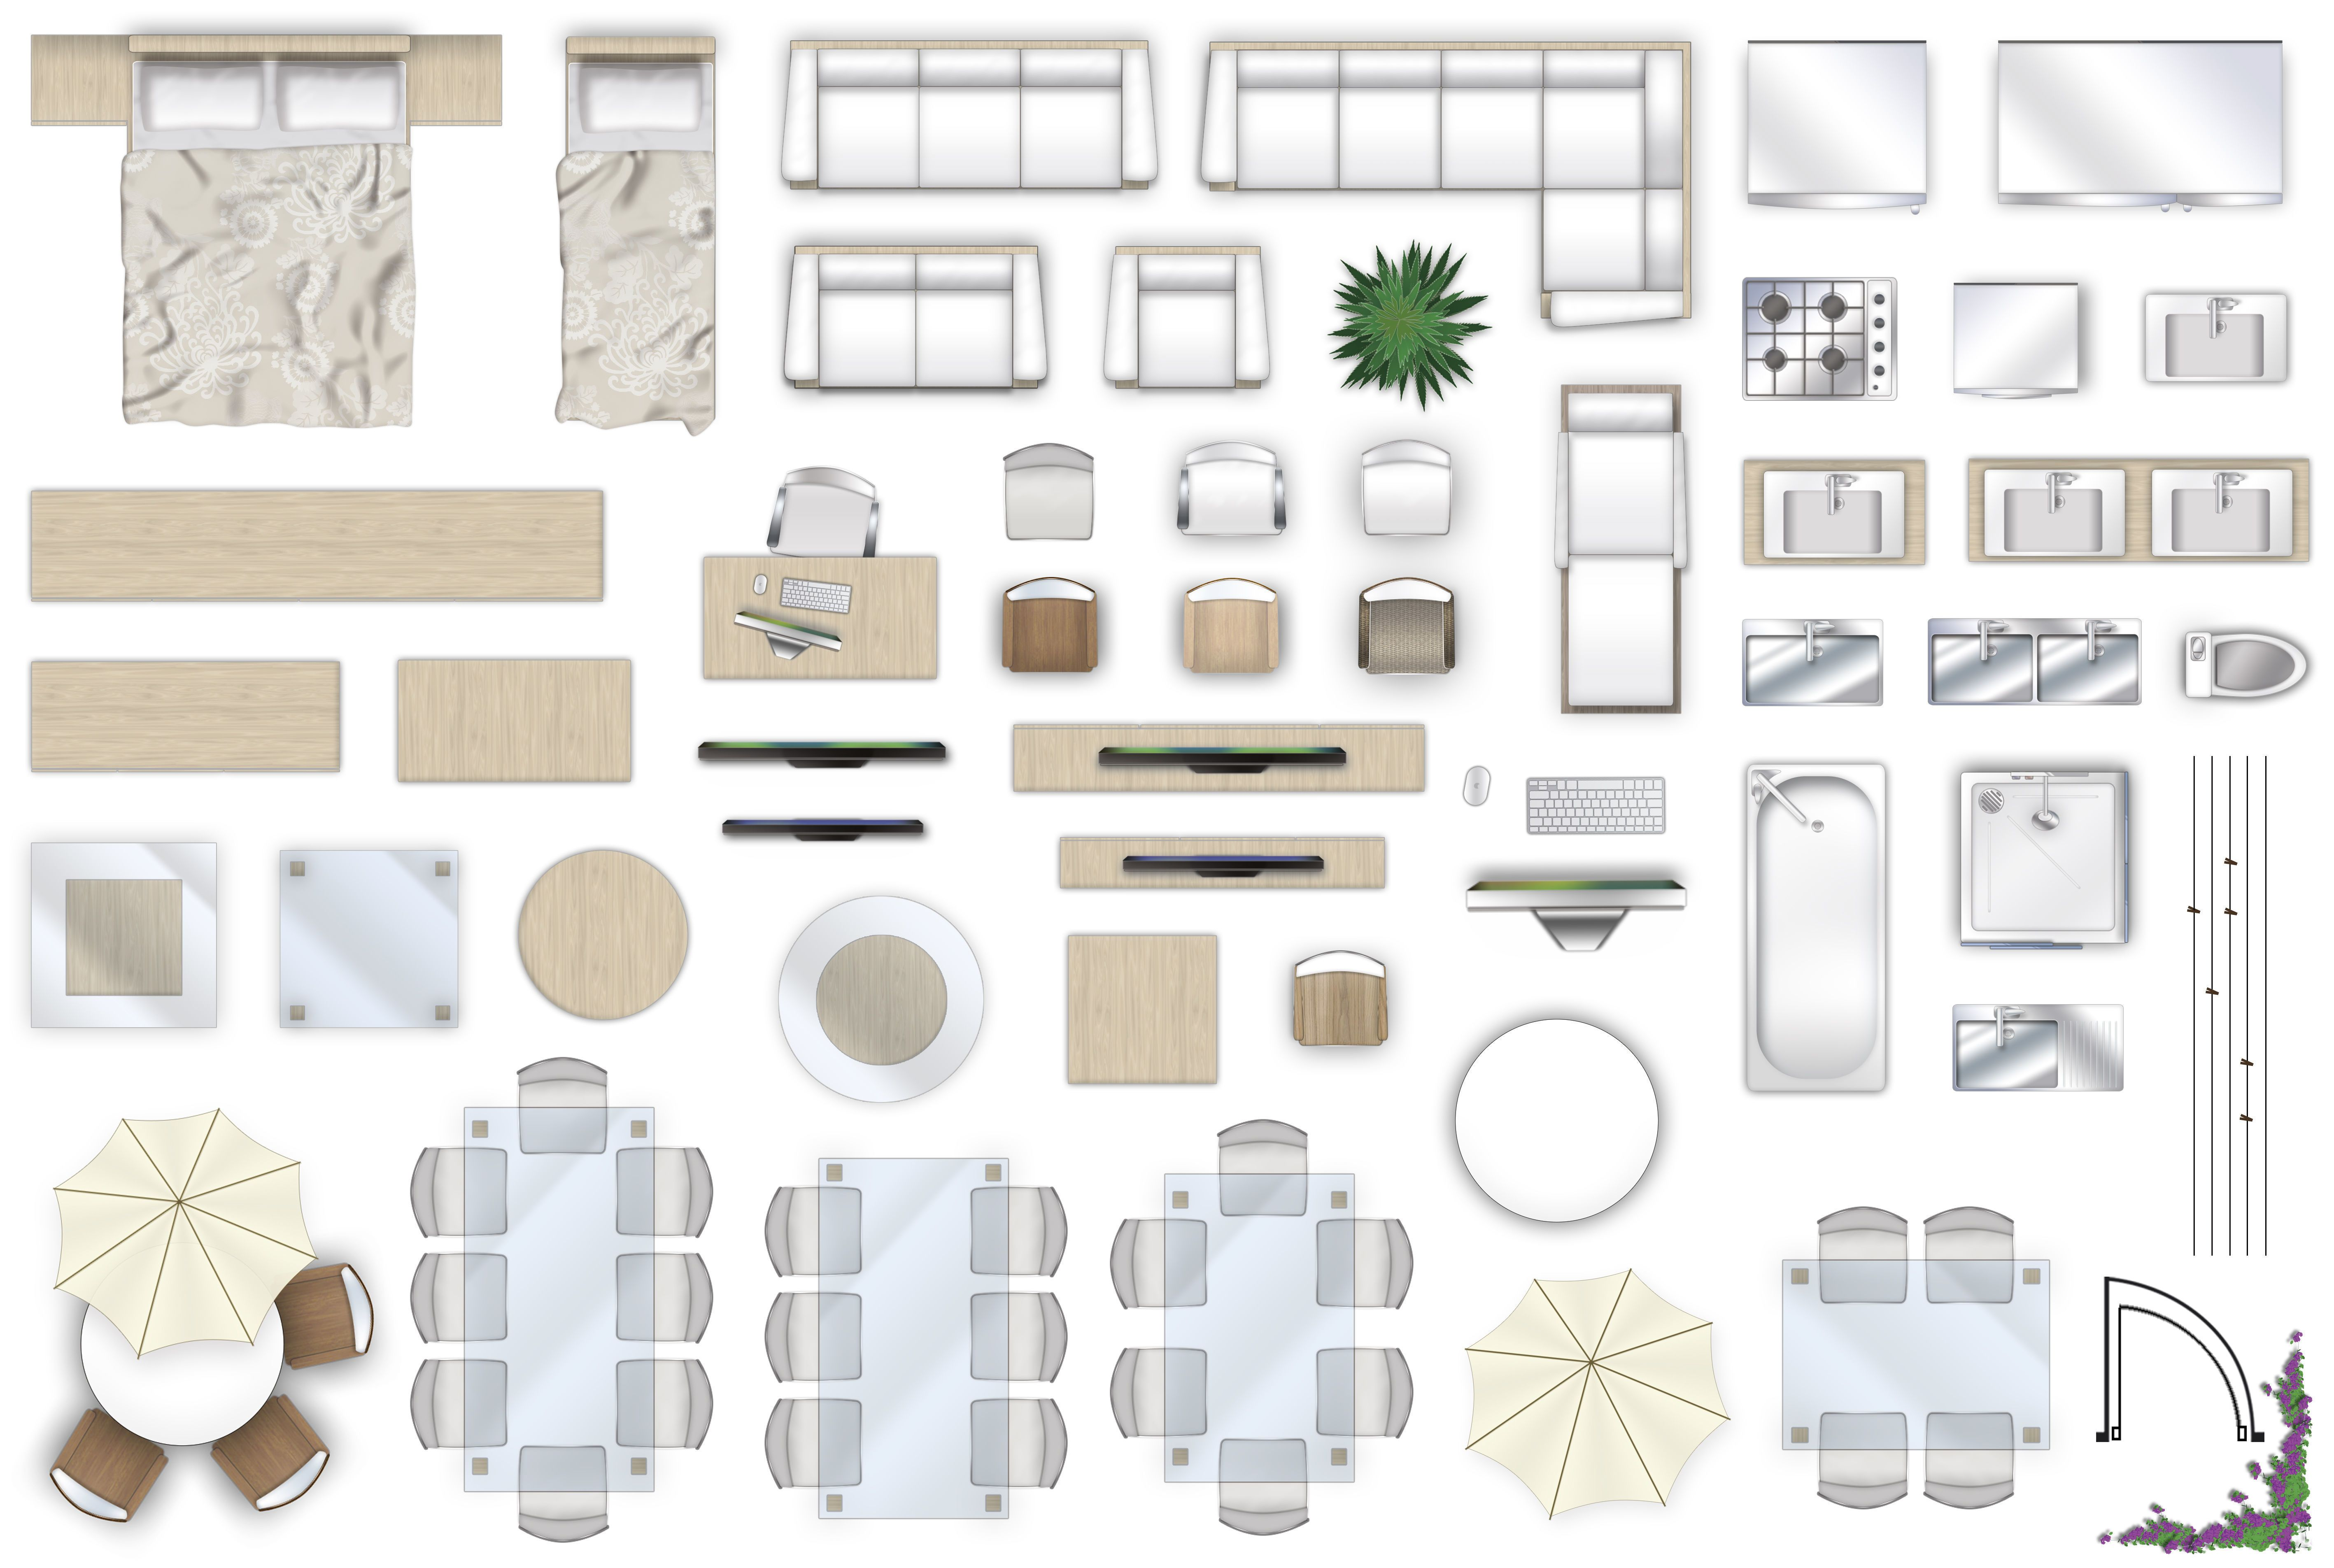 2d furniture floorplan top down view style 4 psd 3d model 3.